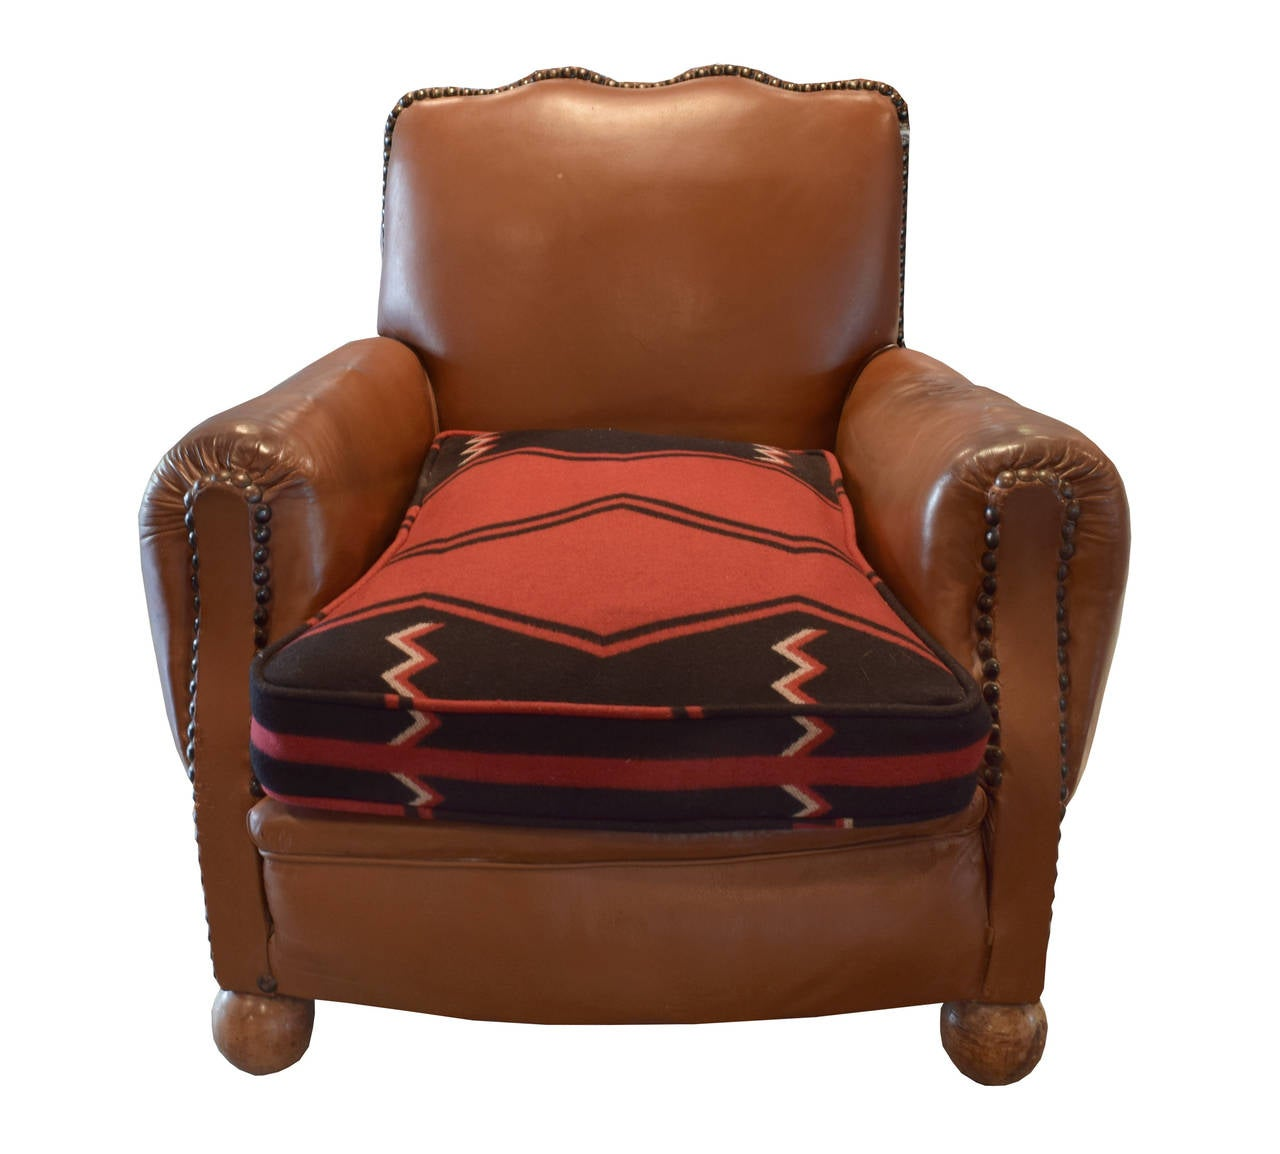 Leather Club Chair With Ralph Lauren Cushion At 1stdibs